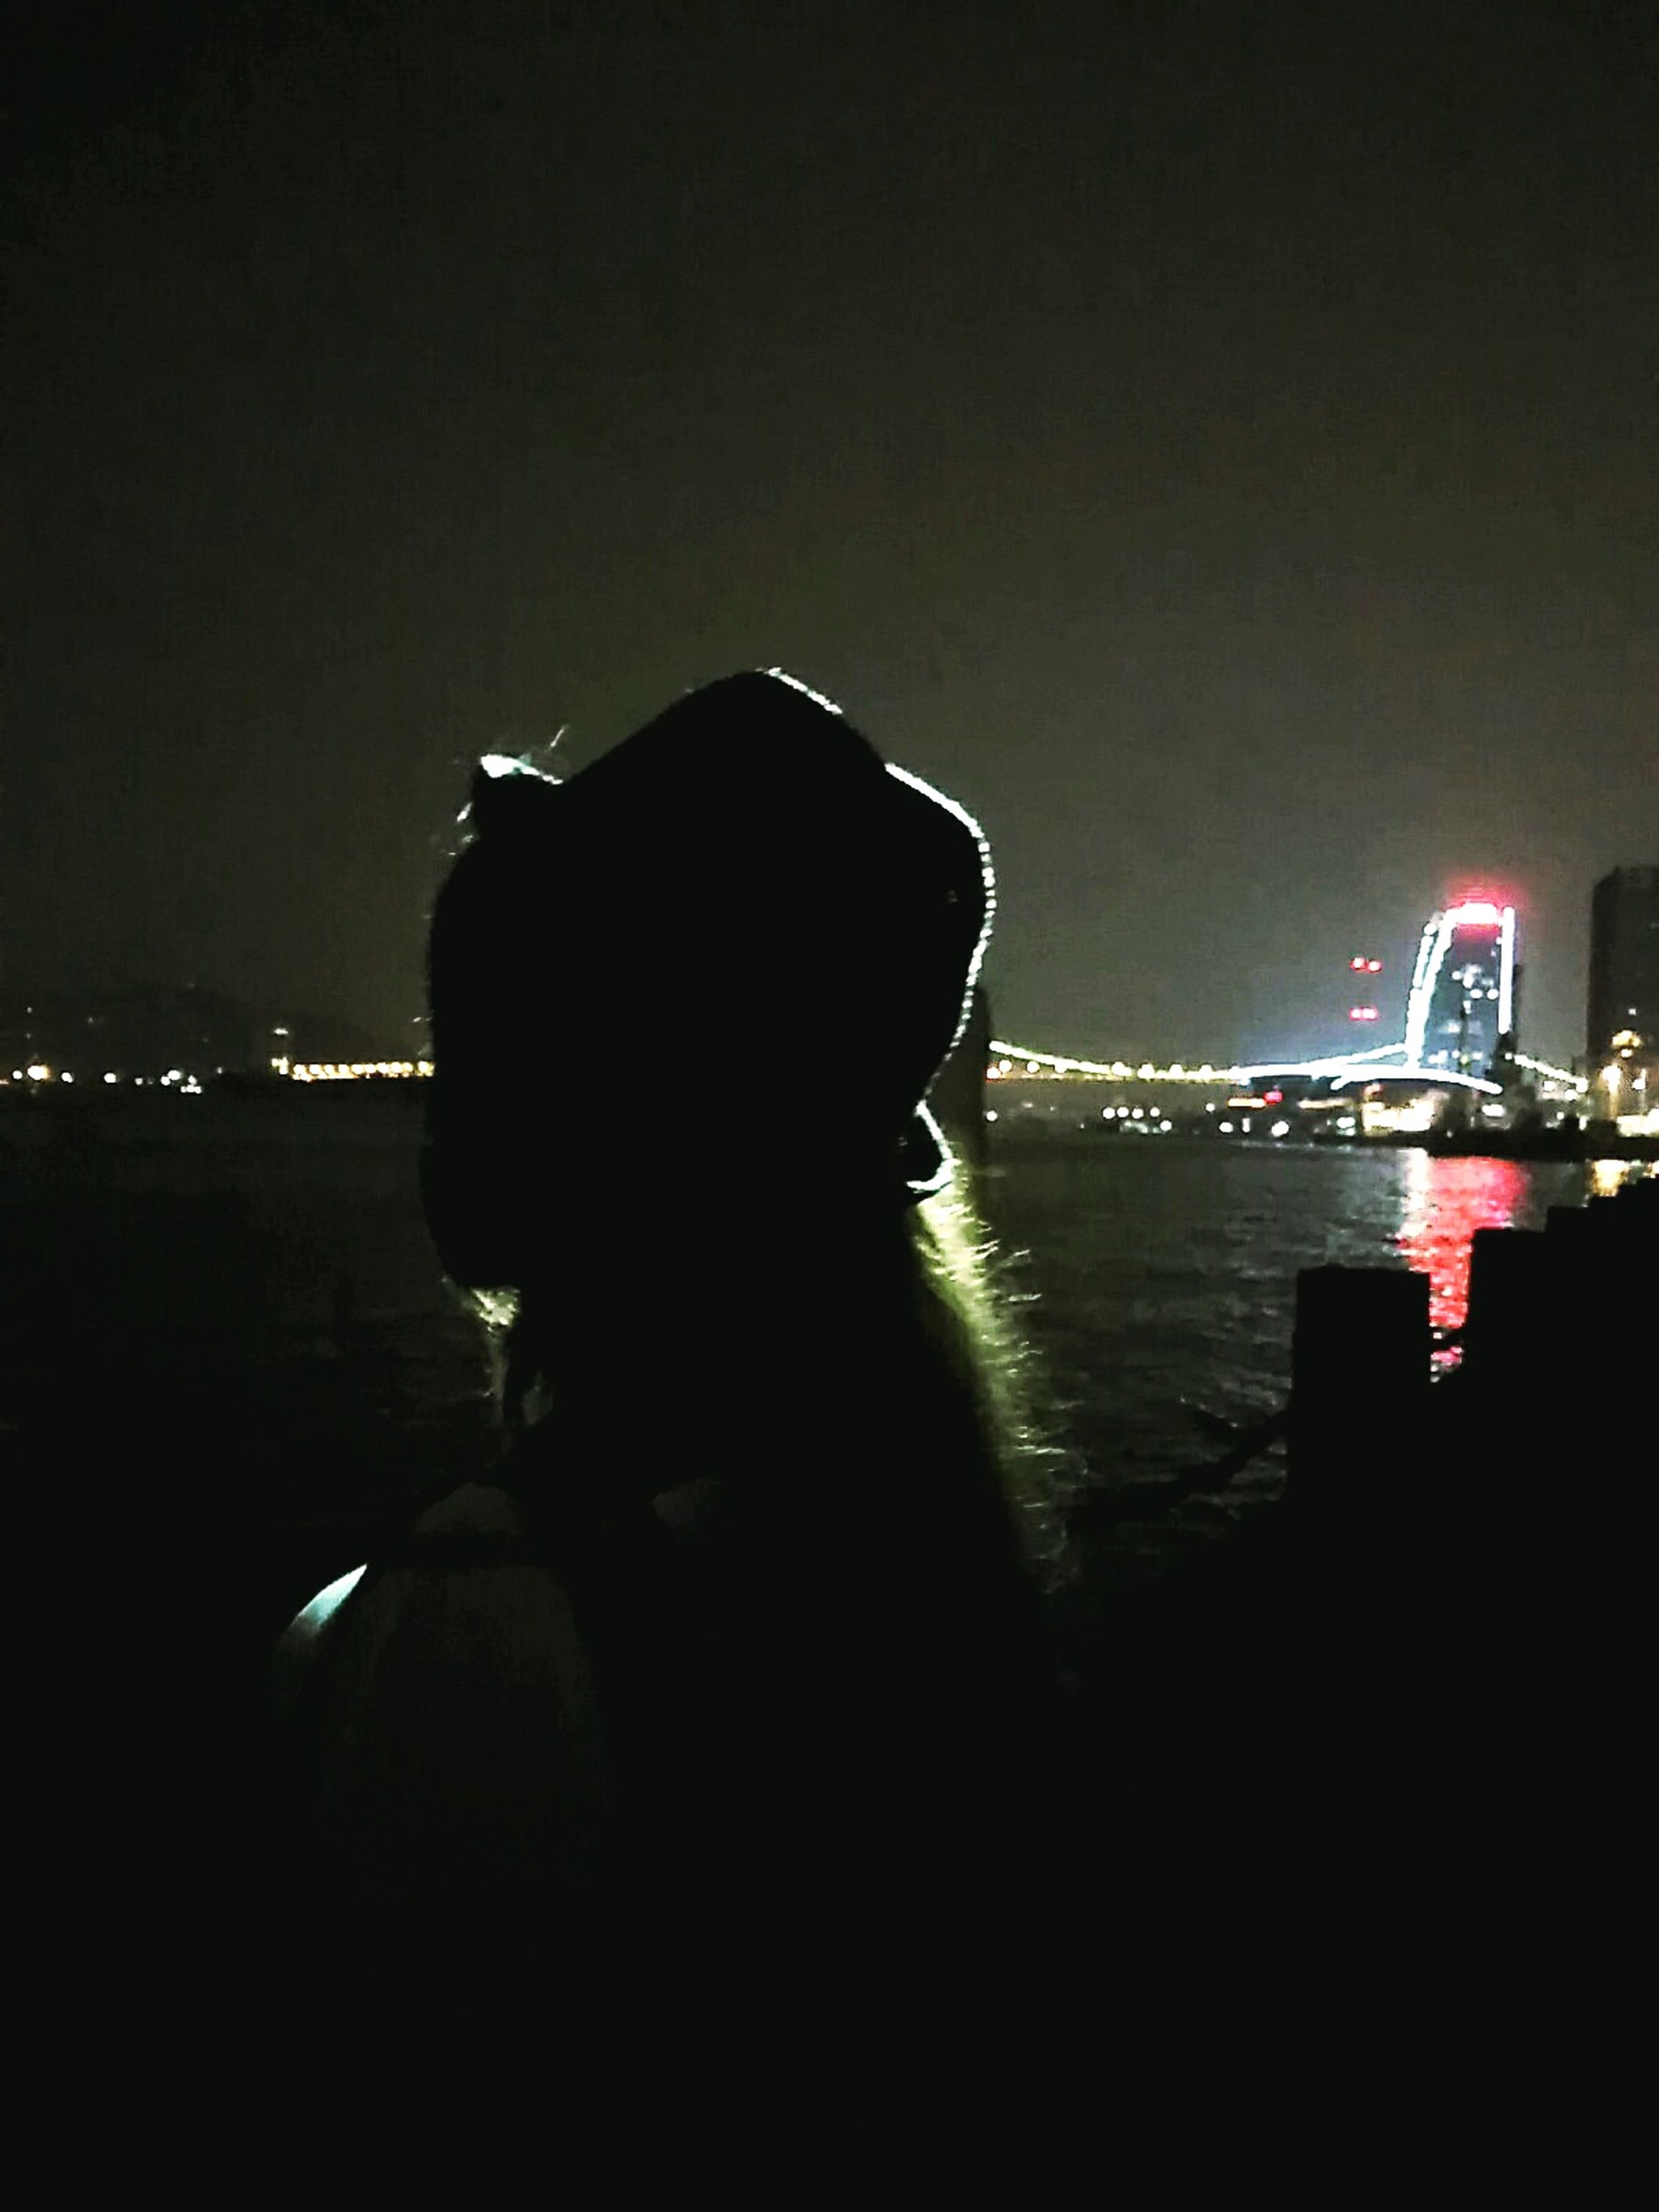 illuminated, night, water, leisure activity, sky, getting away from it all, sea, nature, tranquil scene, tranquility, city life, scenics